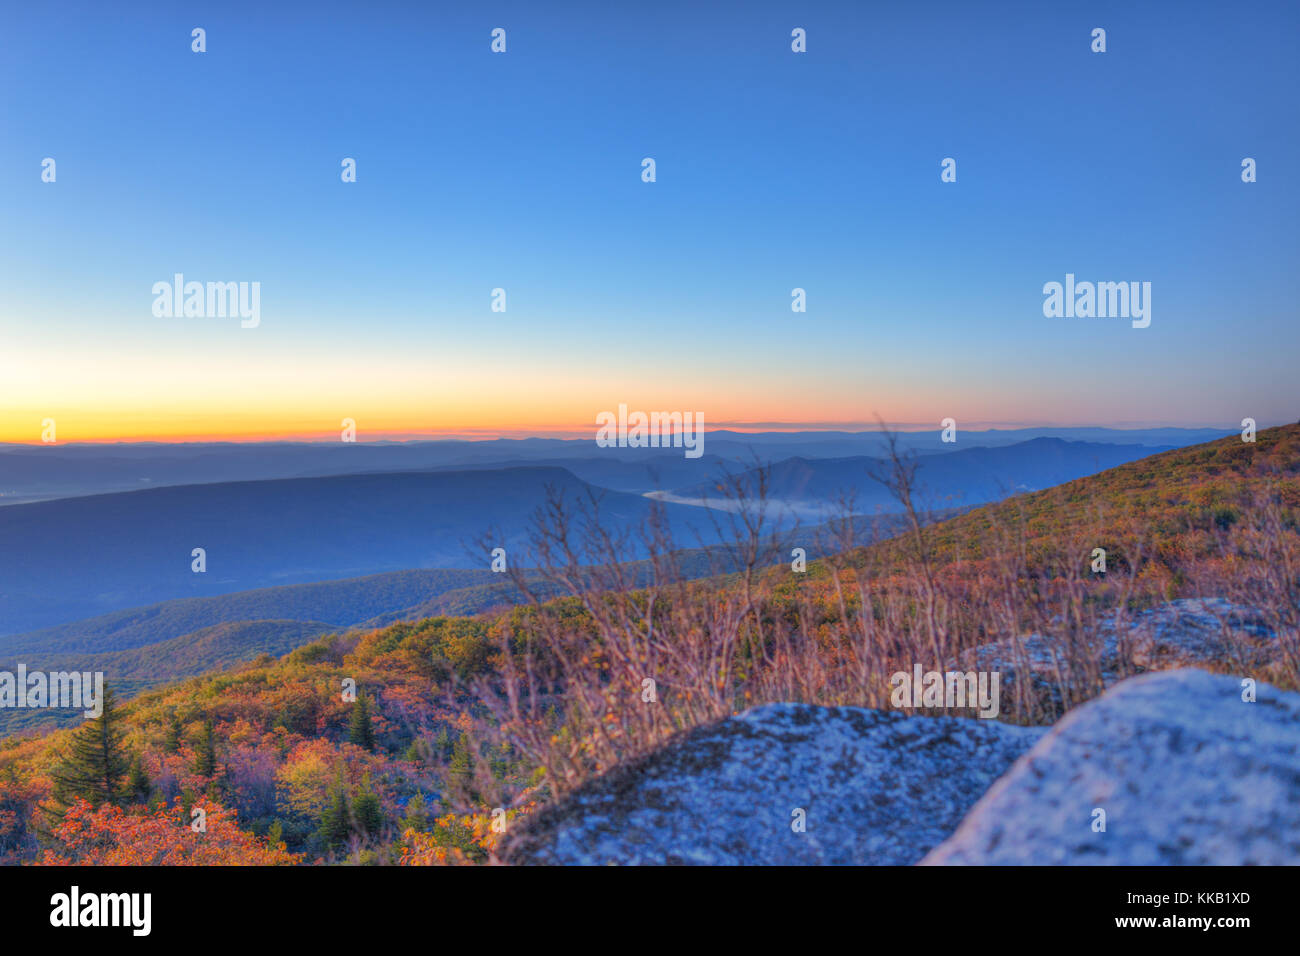 Morning dark sunrise with sky and golden yellow orange autumn foliage in Dolly Sods, Bear Rocks, West Virginia with Stock Photo